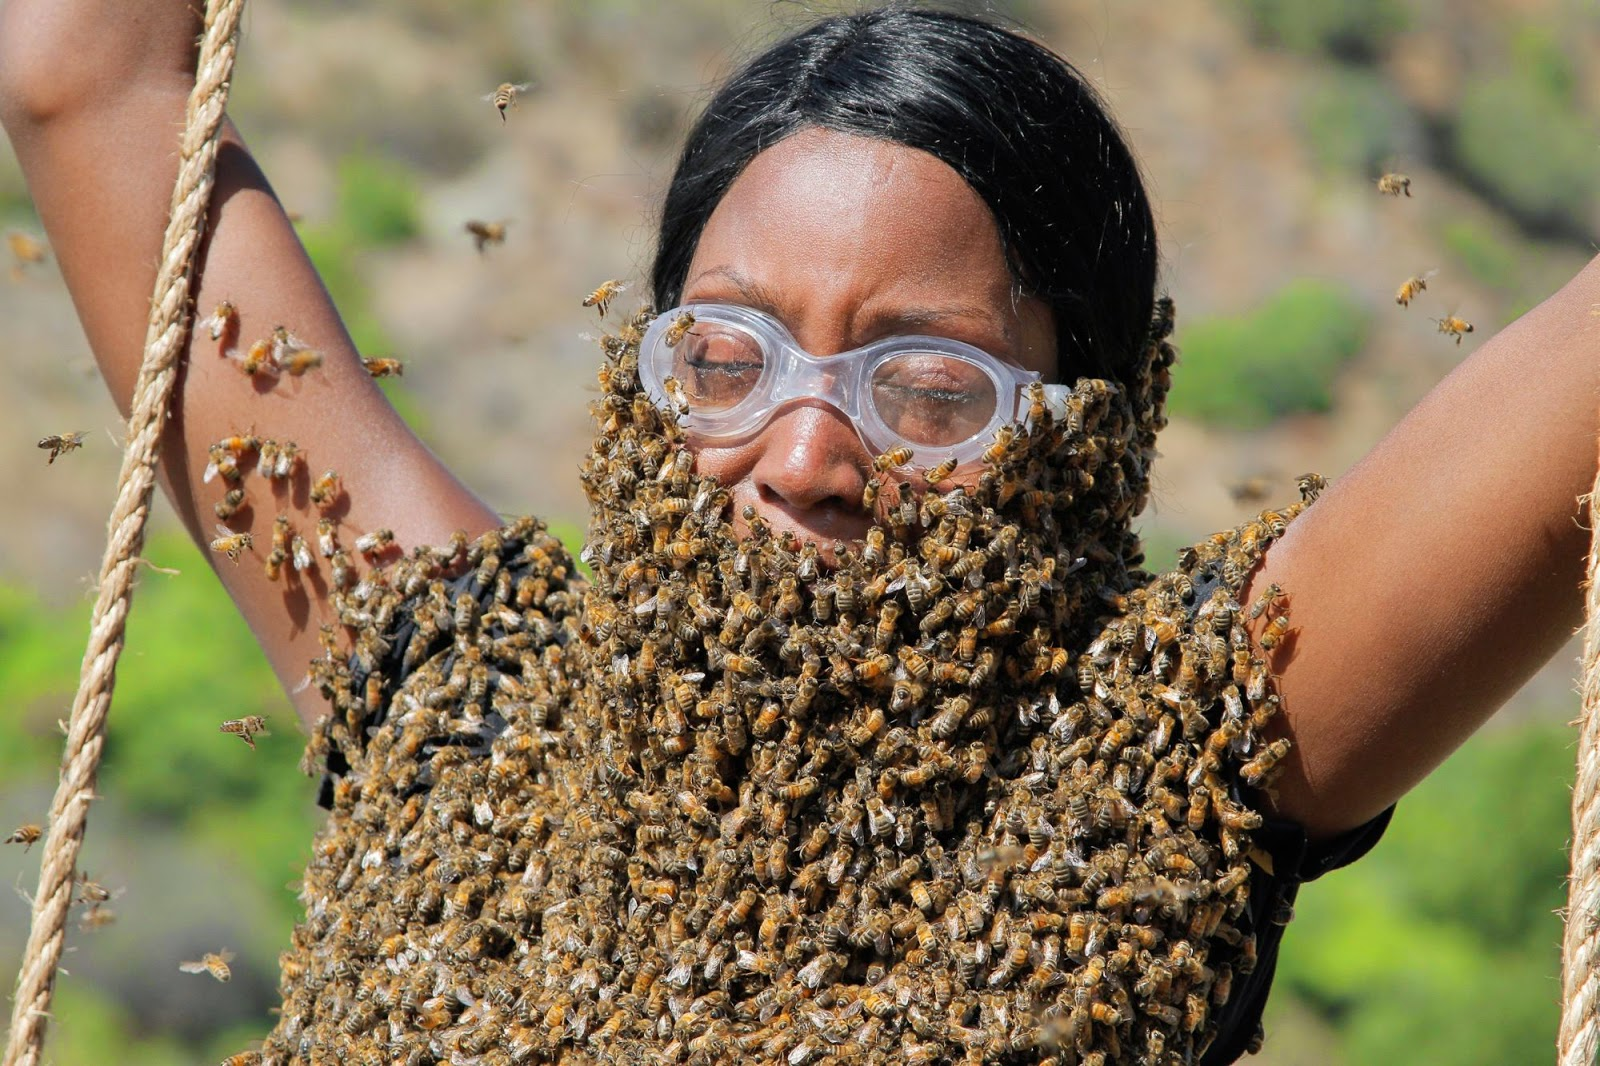 Fear Factor – Bees